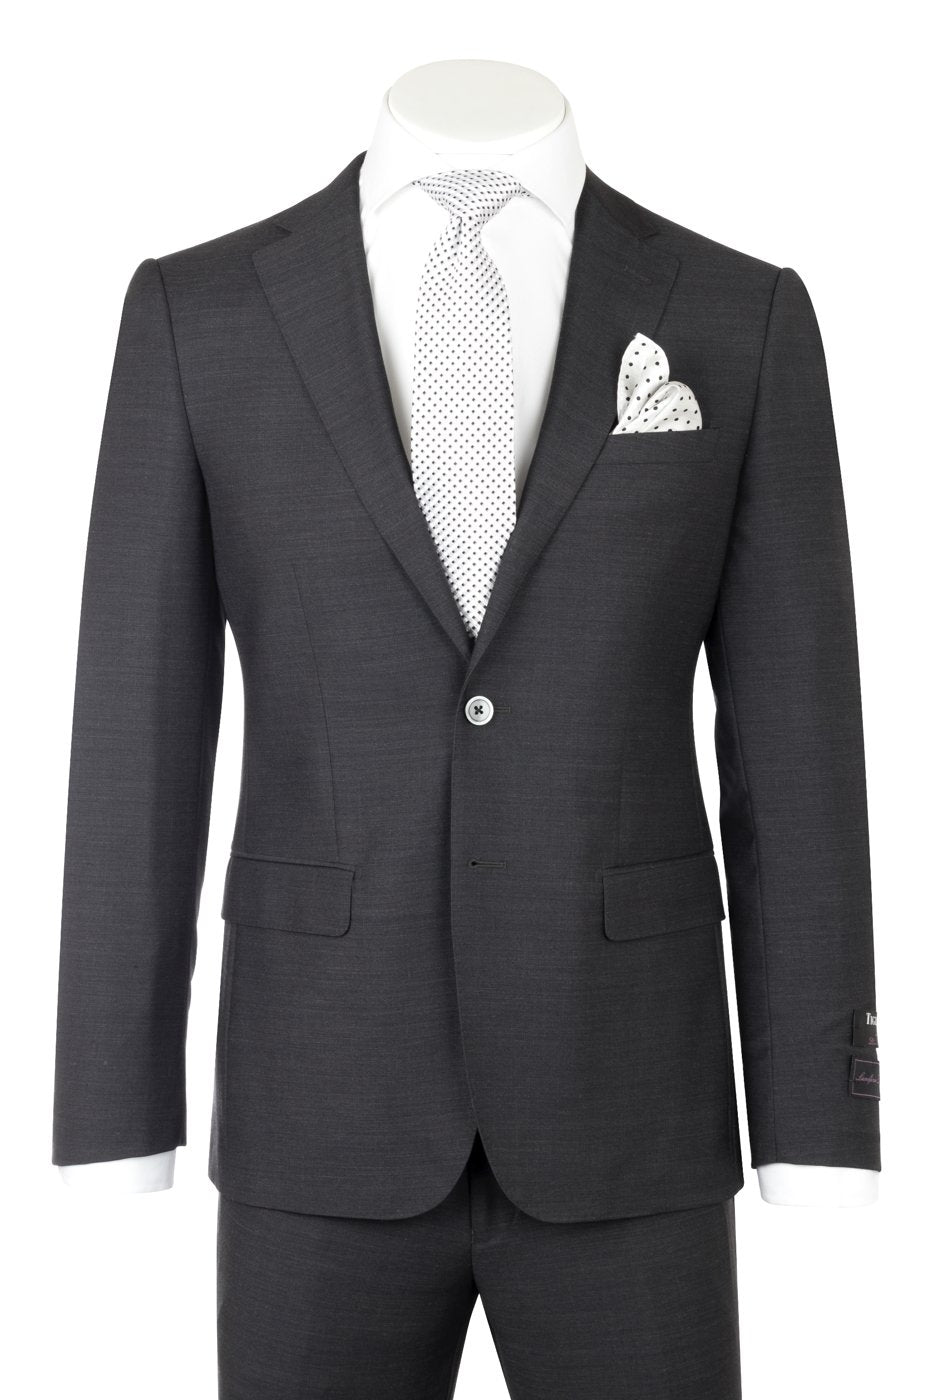 Porto Charcoal Gray, Slim Fit, Pure Wool Suit by Tiglio Luxe TIG1010